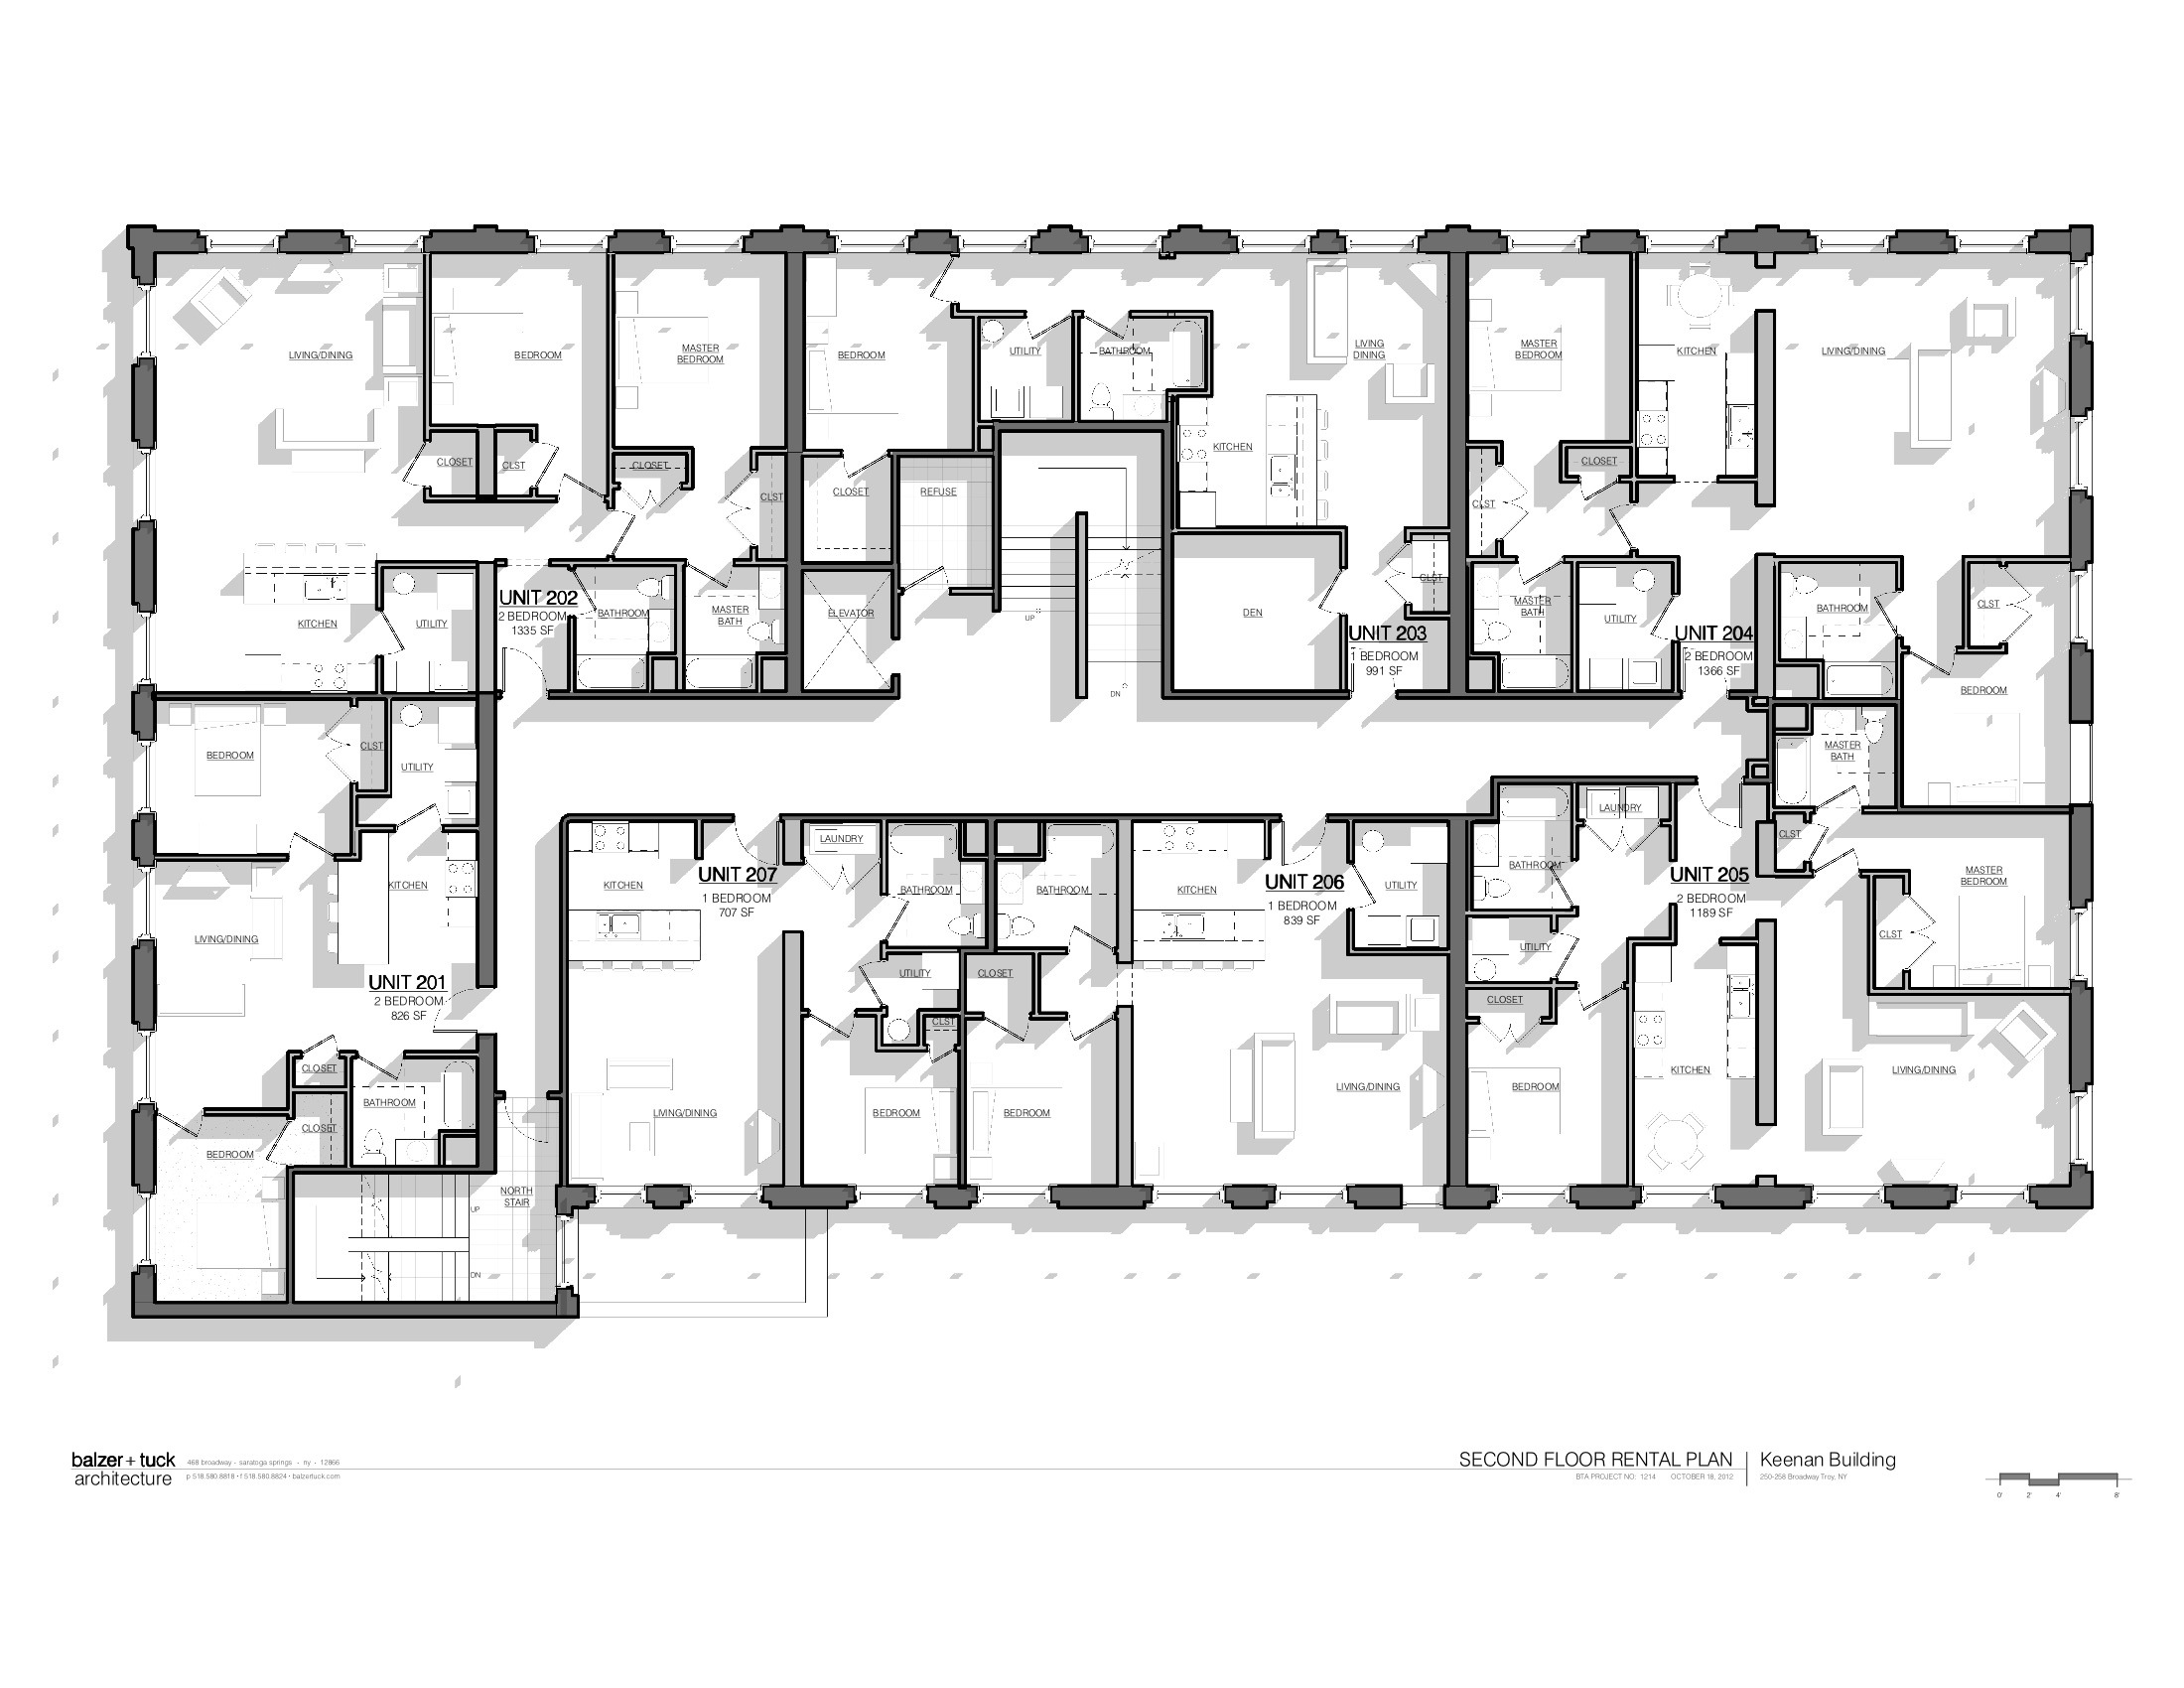 Keenan building floor plans troy new york for New building plans